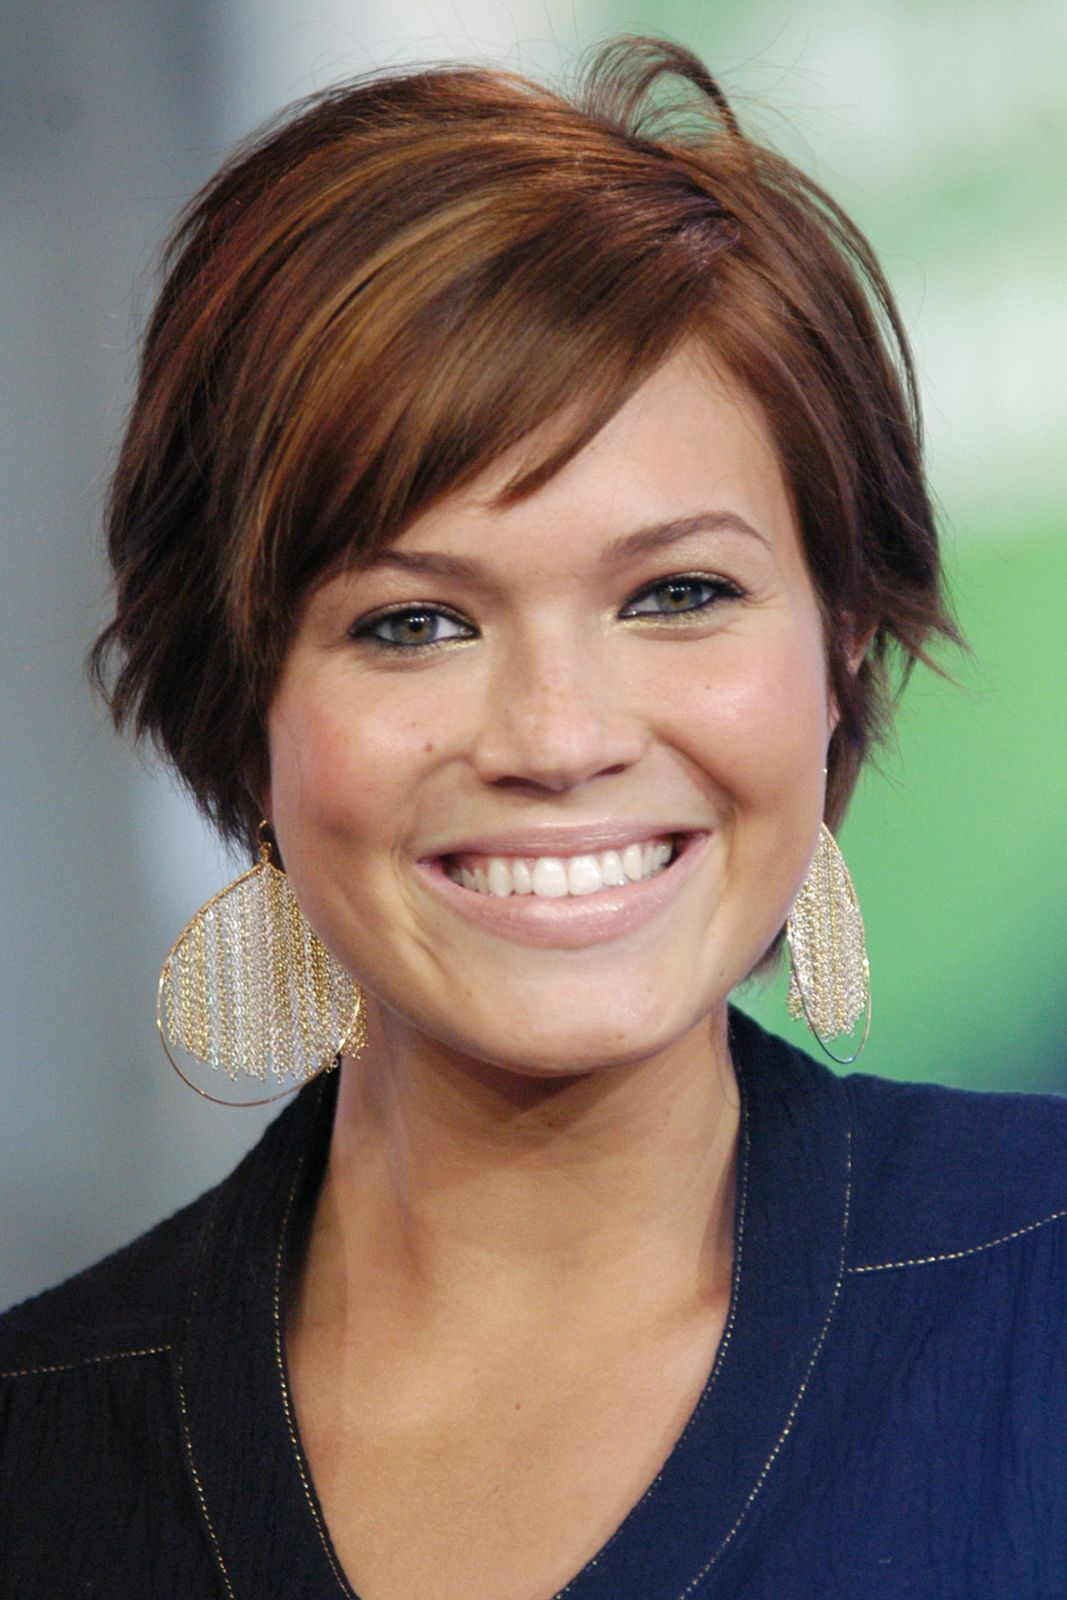 Mandy moore a beauty evolution to remember low key pixie cut we had no idea mandy moores beauty evolution was this extreme refinery29 http baditri Image collections